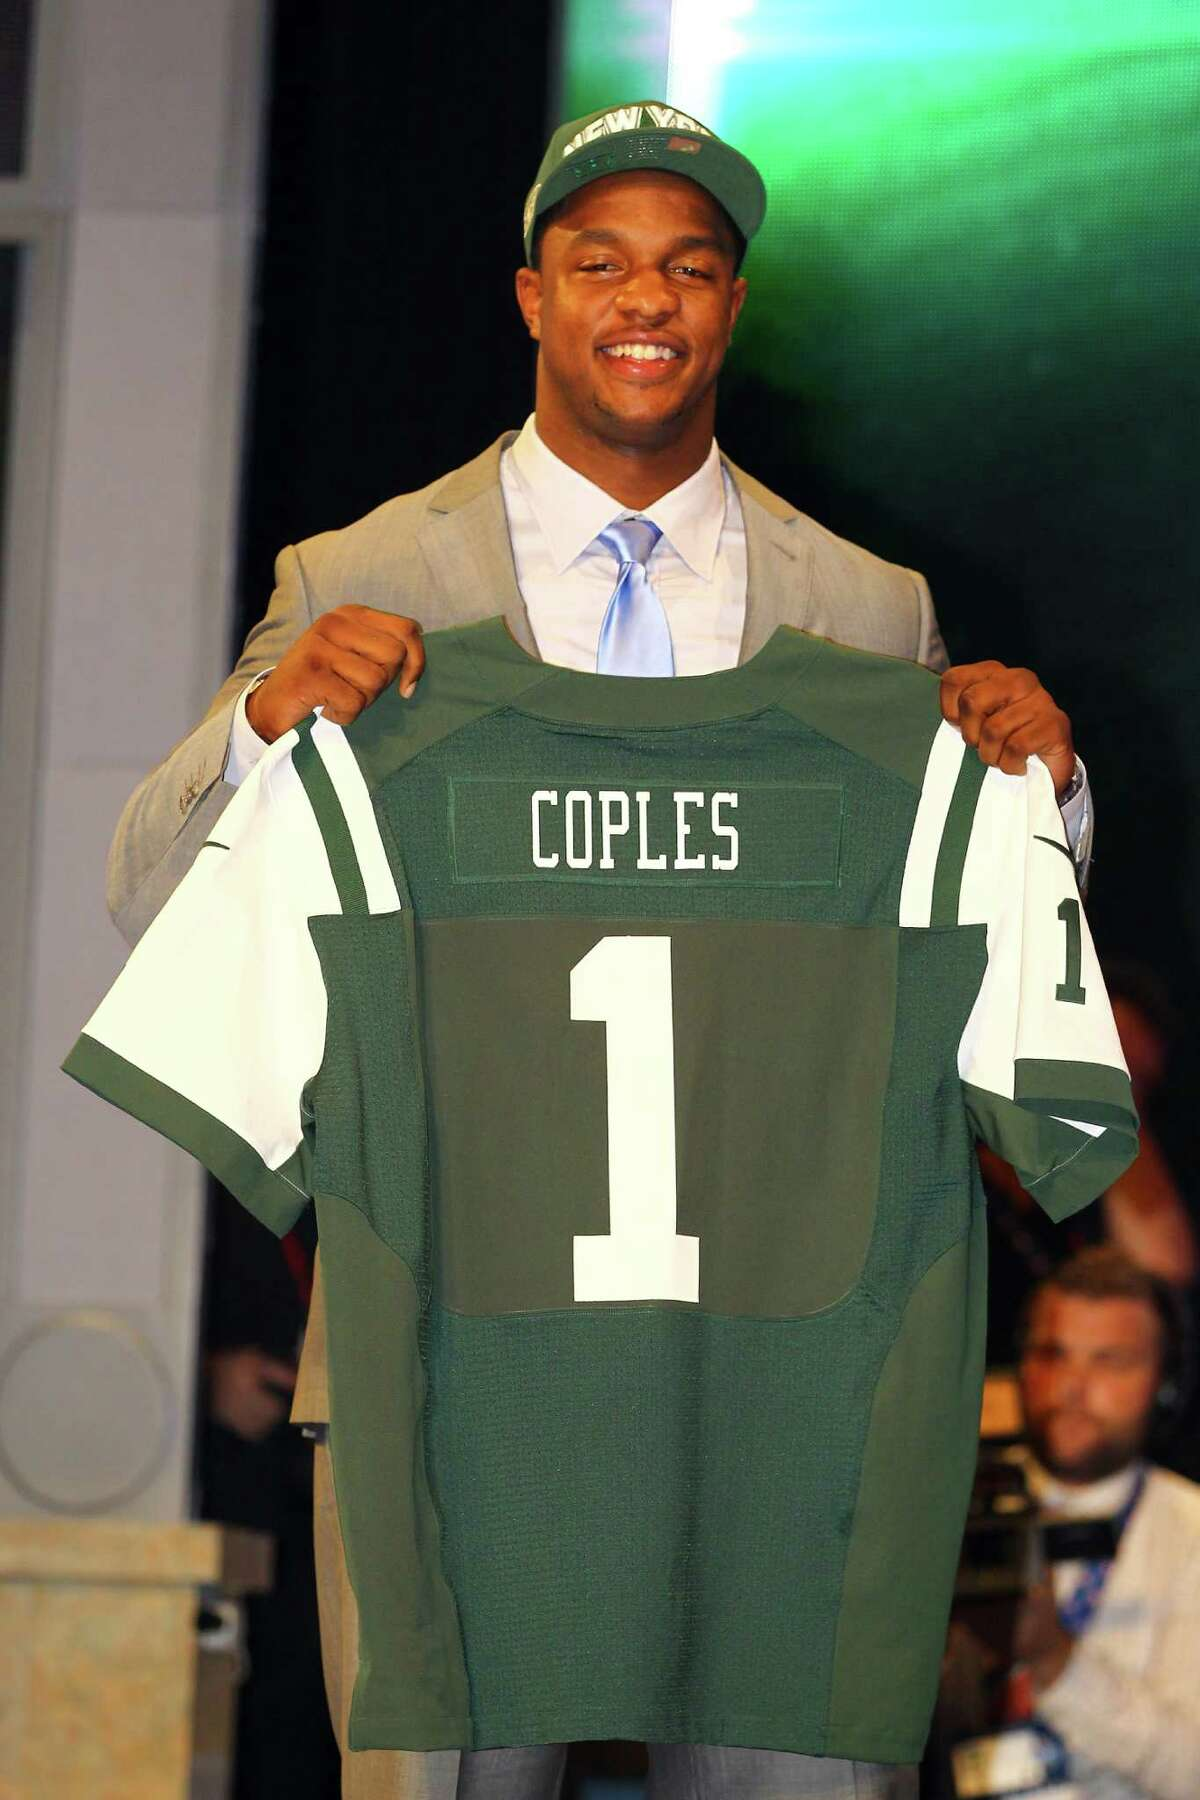 NEW YORK, NY - APRIL 26: Quinton Coples of North Carolina holds up a jersey as he stands on stage after he was selected #16 overall by the New York Jets in the first round of the 2012 NFL Draft at Radio City Music Hall on April 26, 2012 in New York City. (Photo by Al Bello/Getty Images)